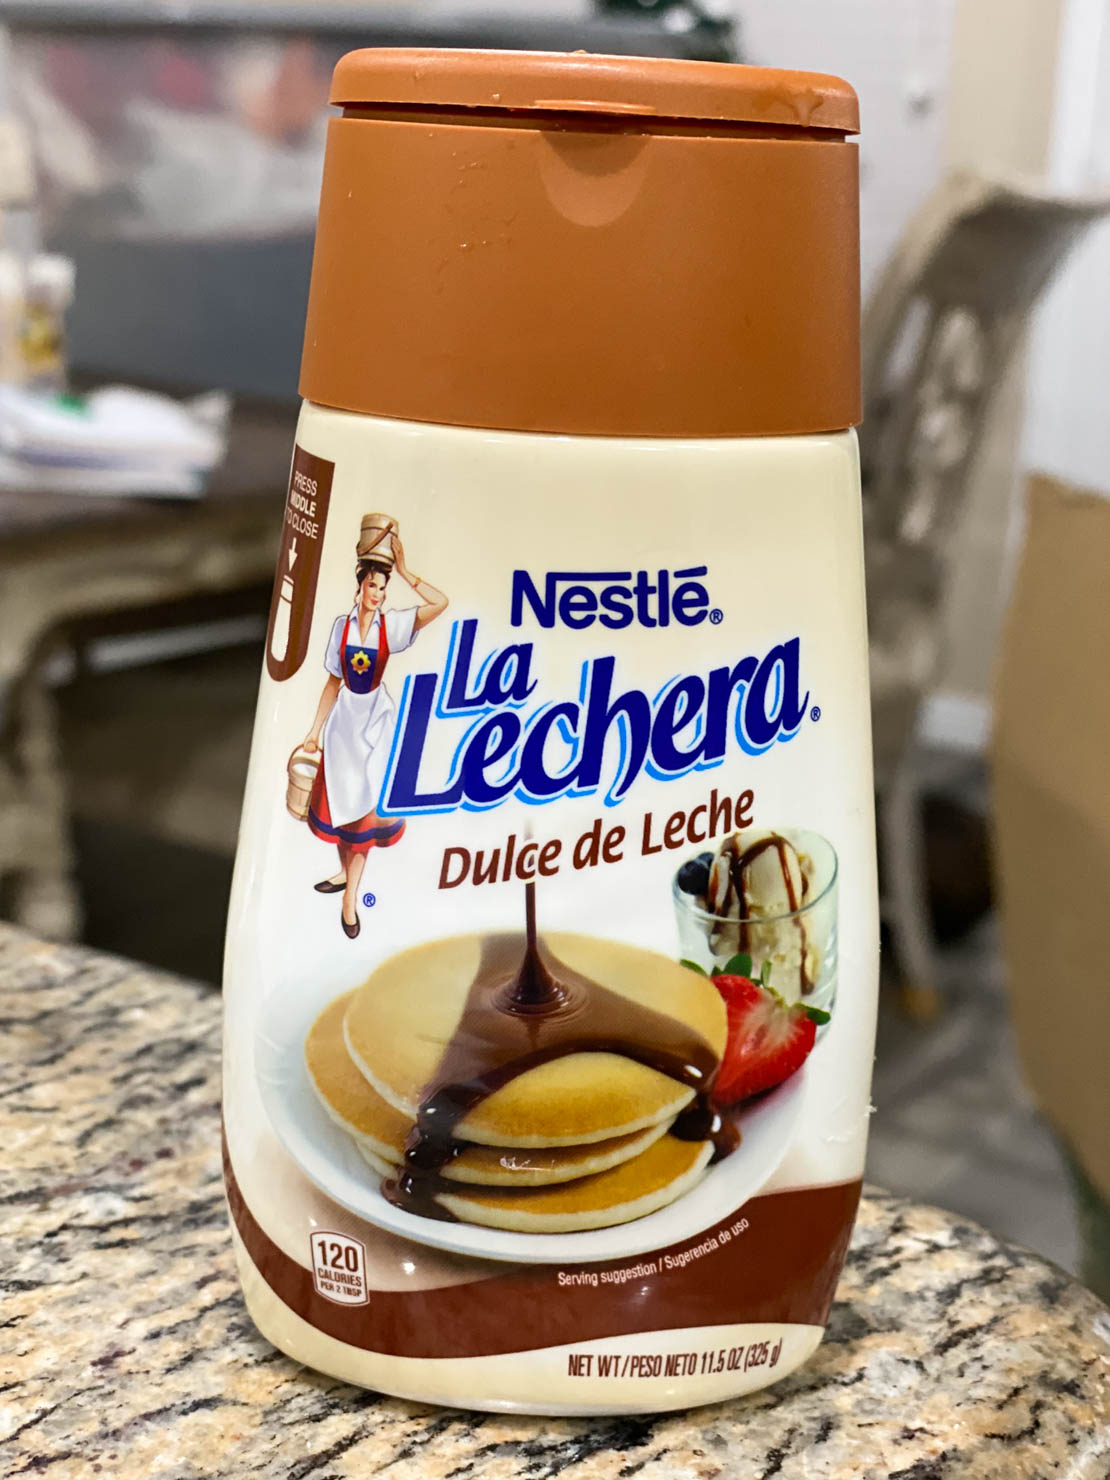 A bottle of La Lechera, Dulce de Leche